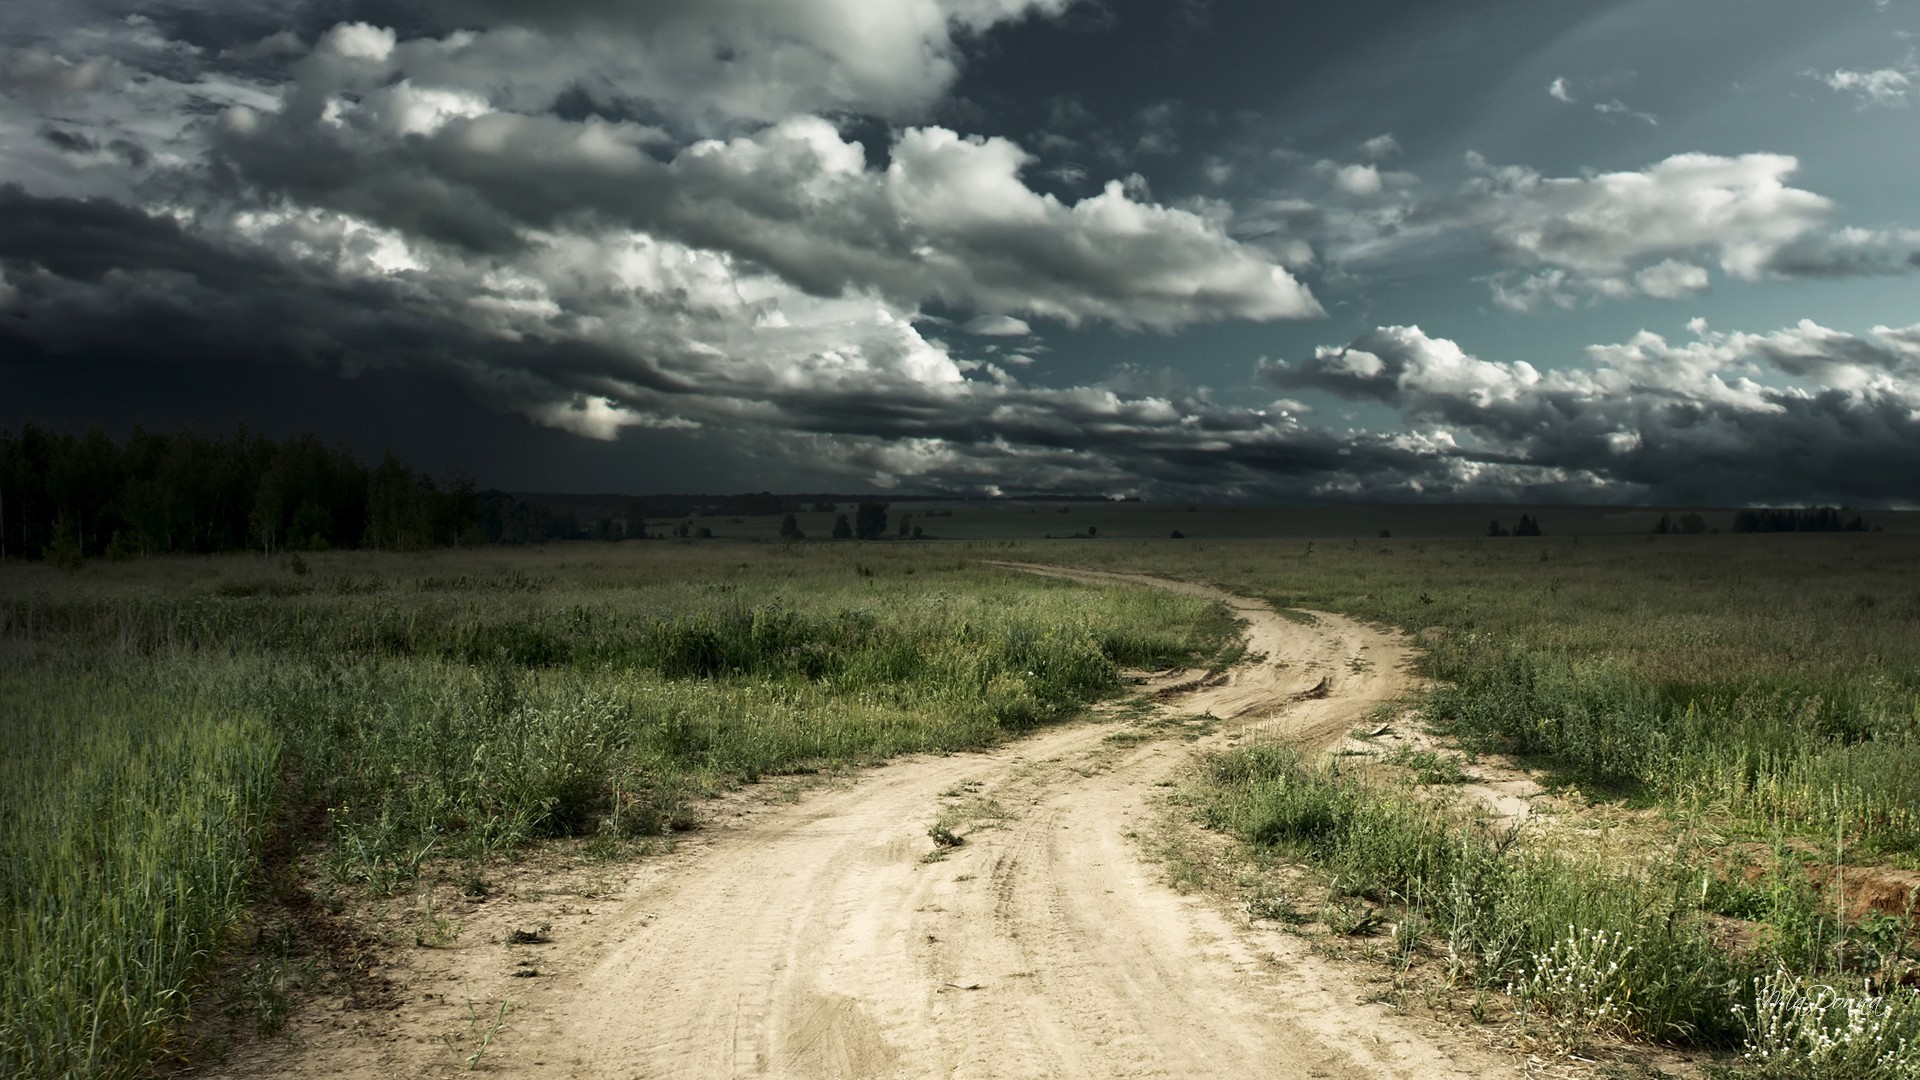 1920x1080 Stormy Tag - Road Stormy Sky Fields Path Farm Dark Country Tempestuous  Rough Tumultuous Rabid Storm